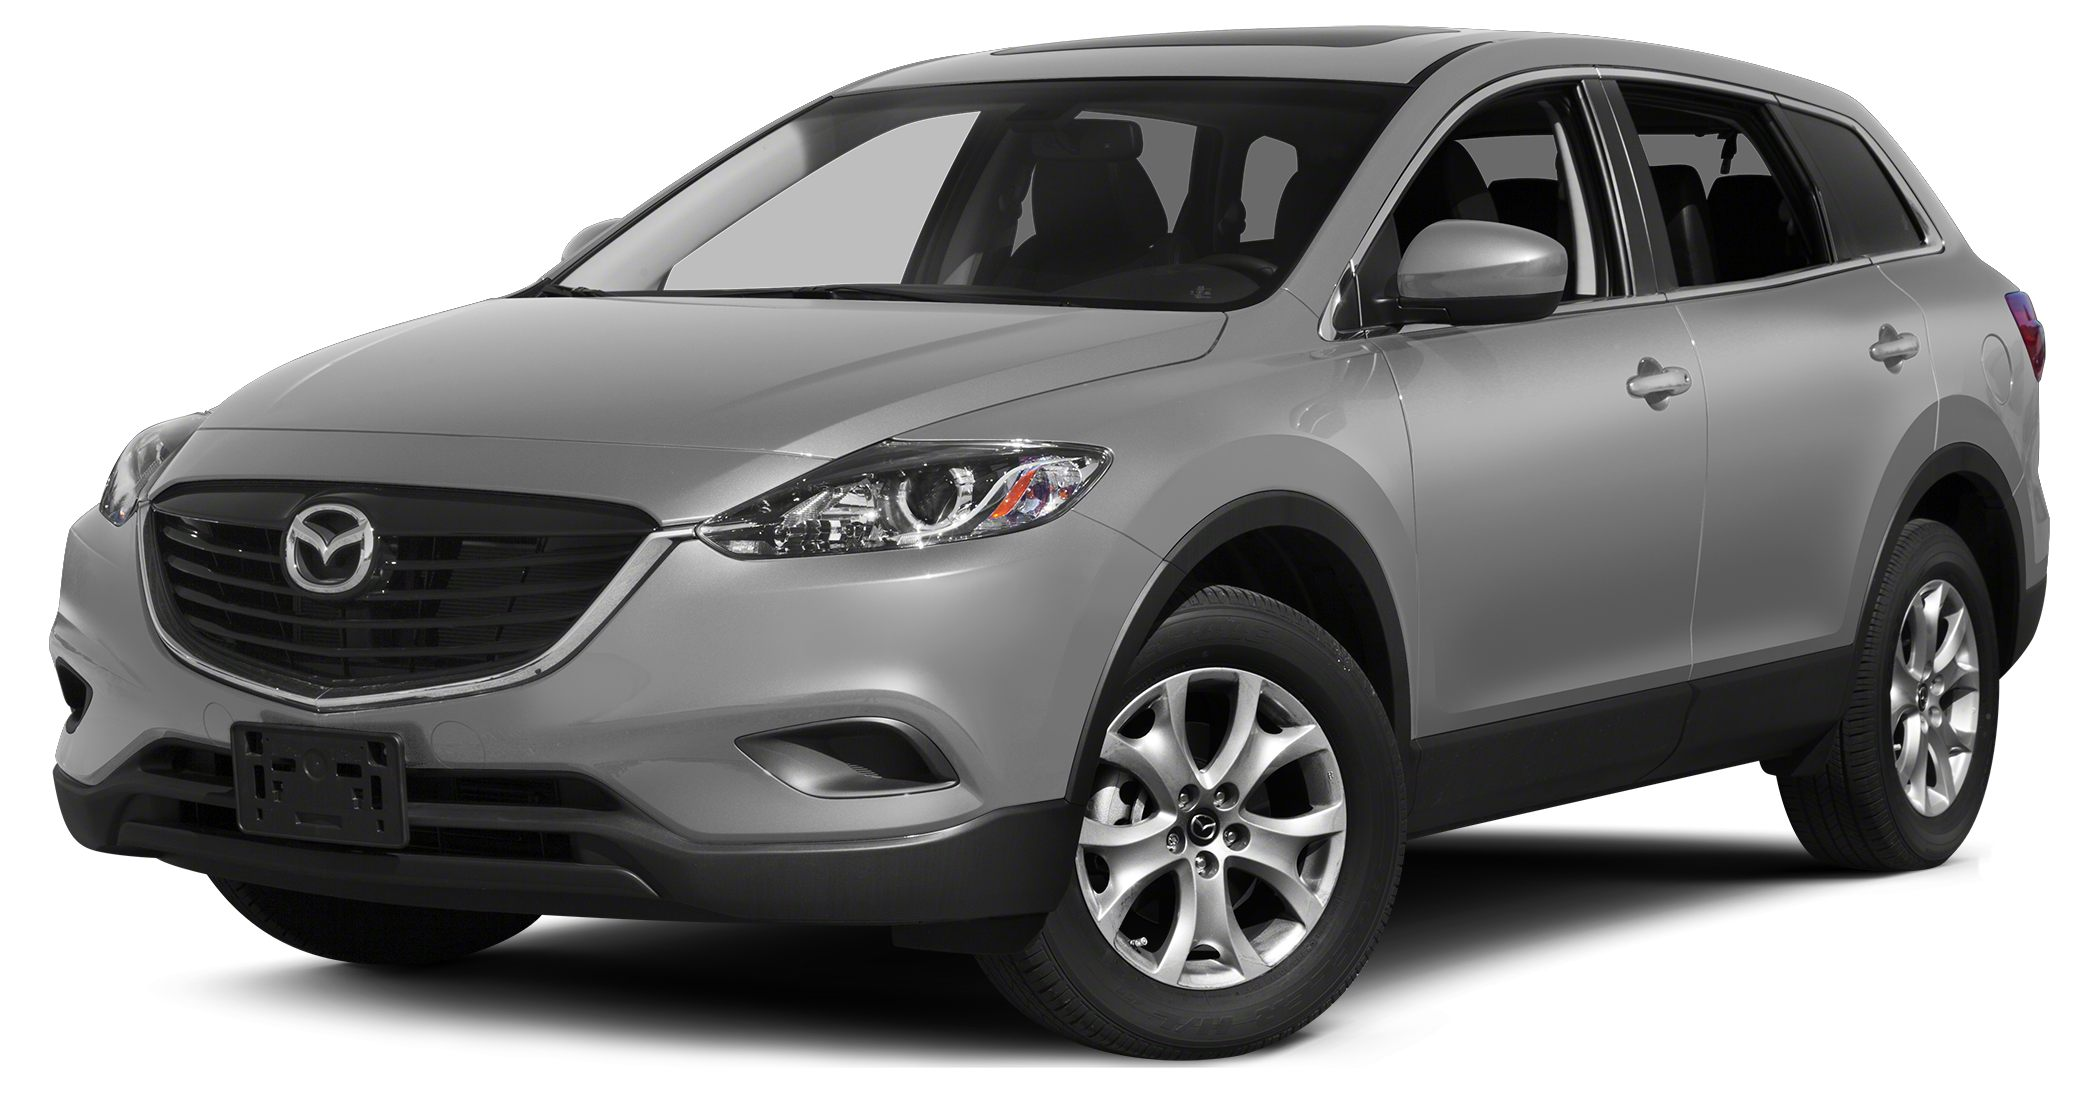 2013 Mazda CX-9 Sport WE SELL OUR VEHICLES AT WHOLESALE PRICES AND STAND BEHIND OUR CARS  COM